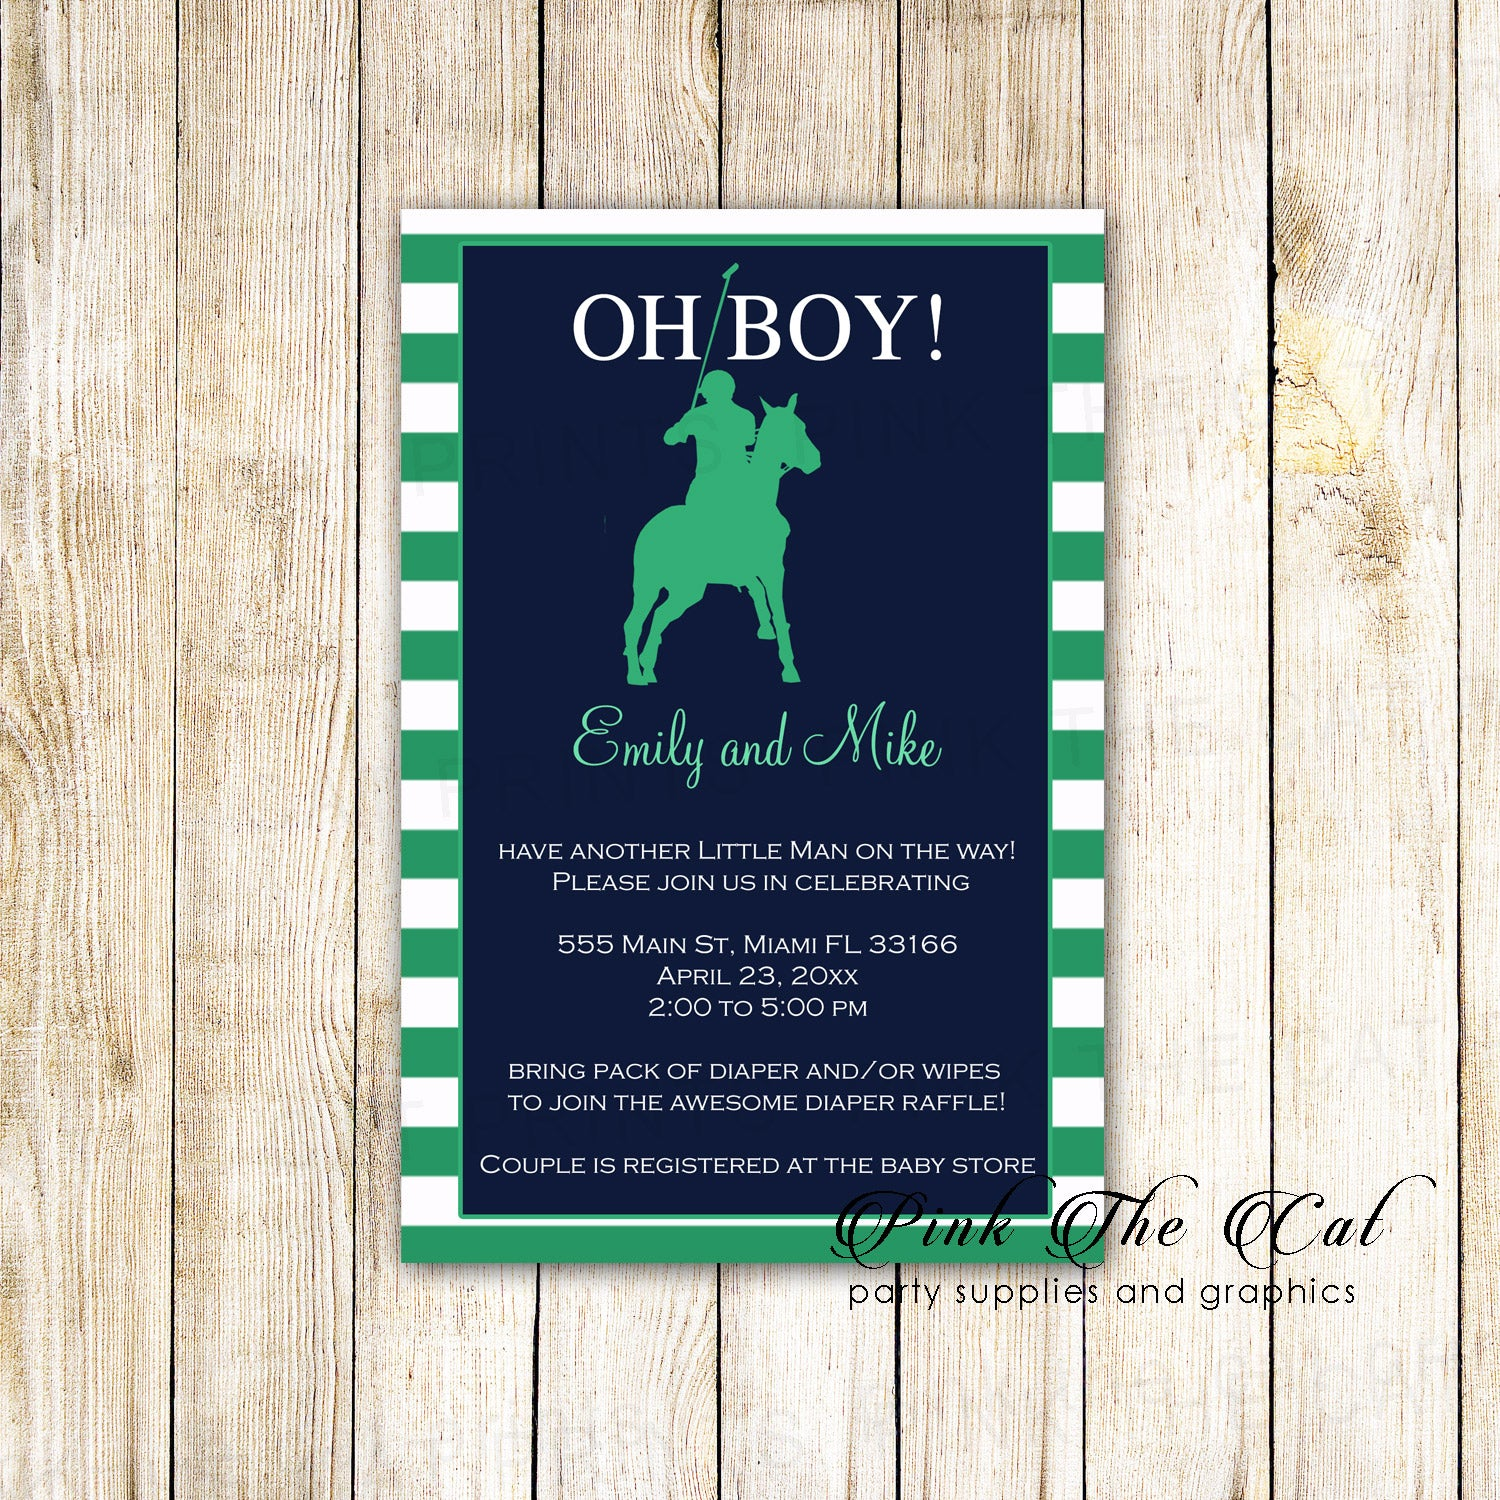 30 Polo green blue invitations birthday baby shower with envelopes